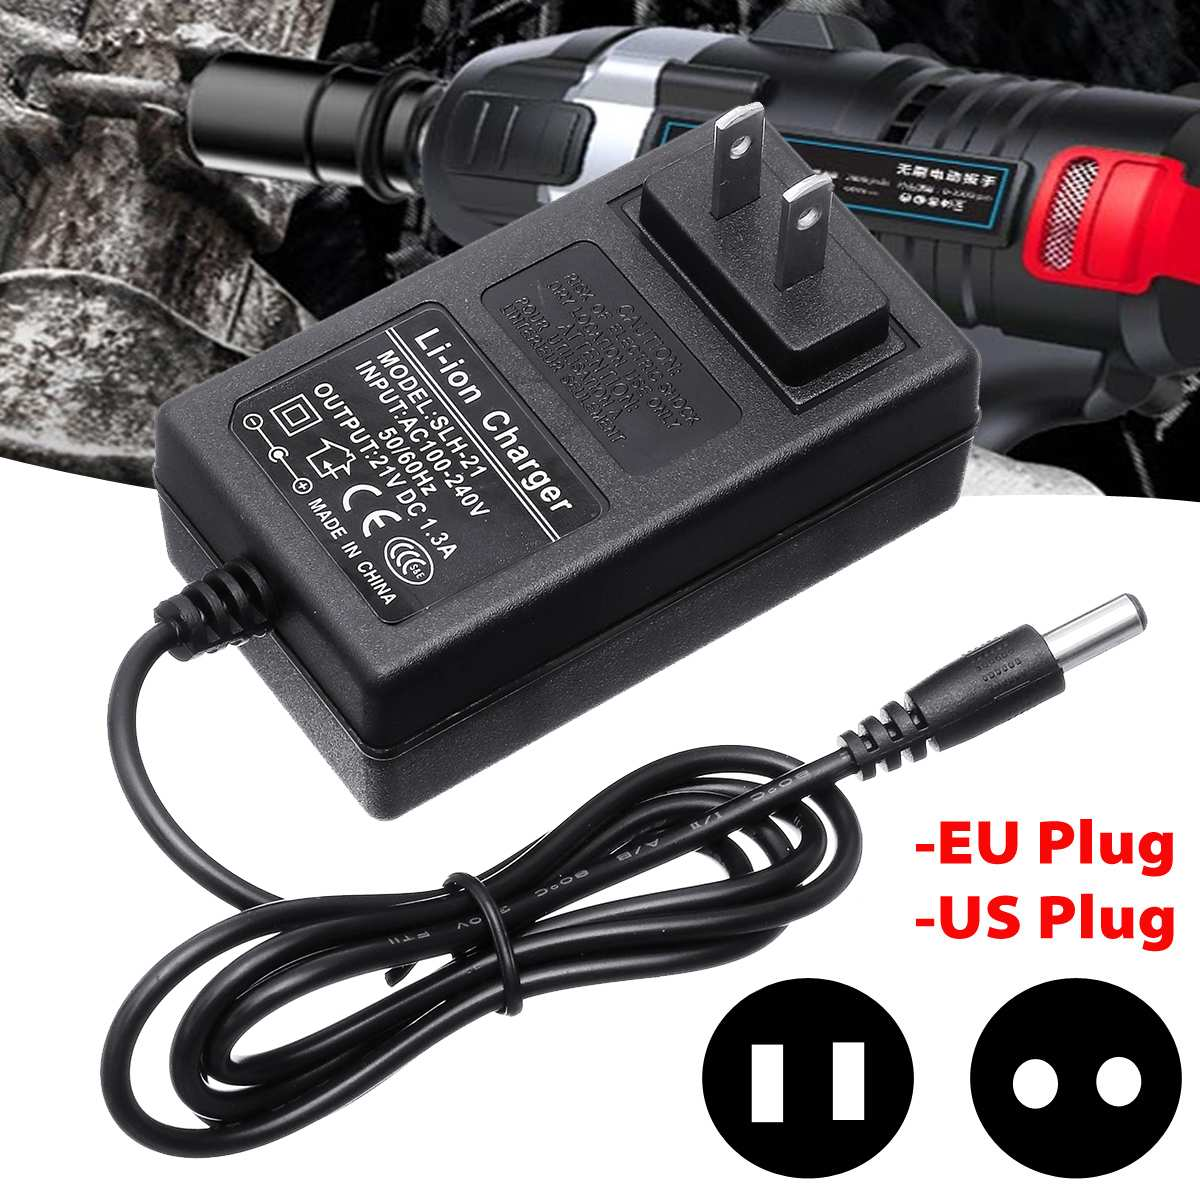 21V DC5521 Electric Wrench Charger Lithium Battery Wrench Charger  Desktop High Fast Charge